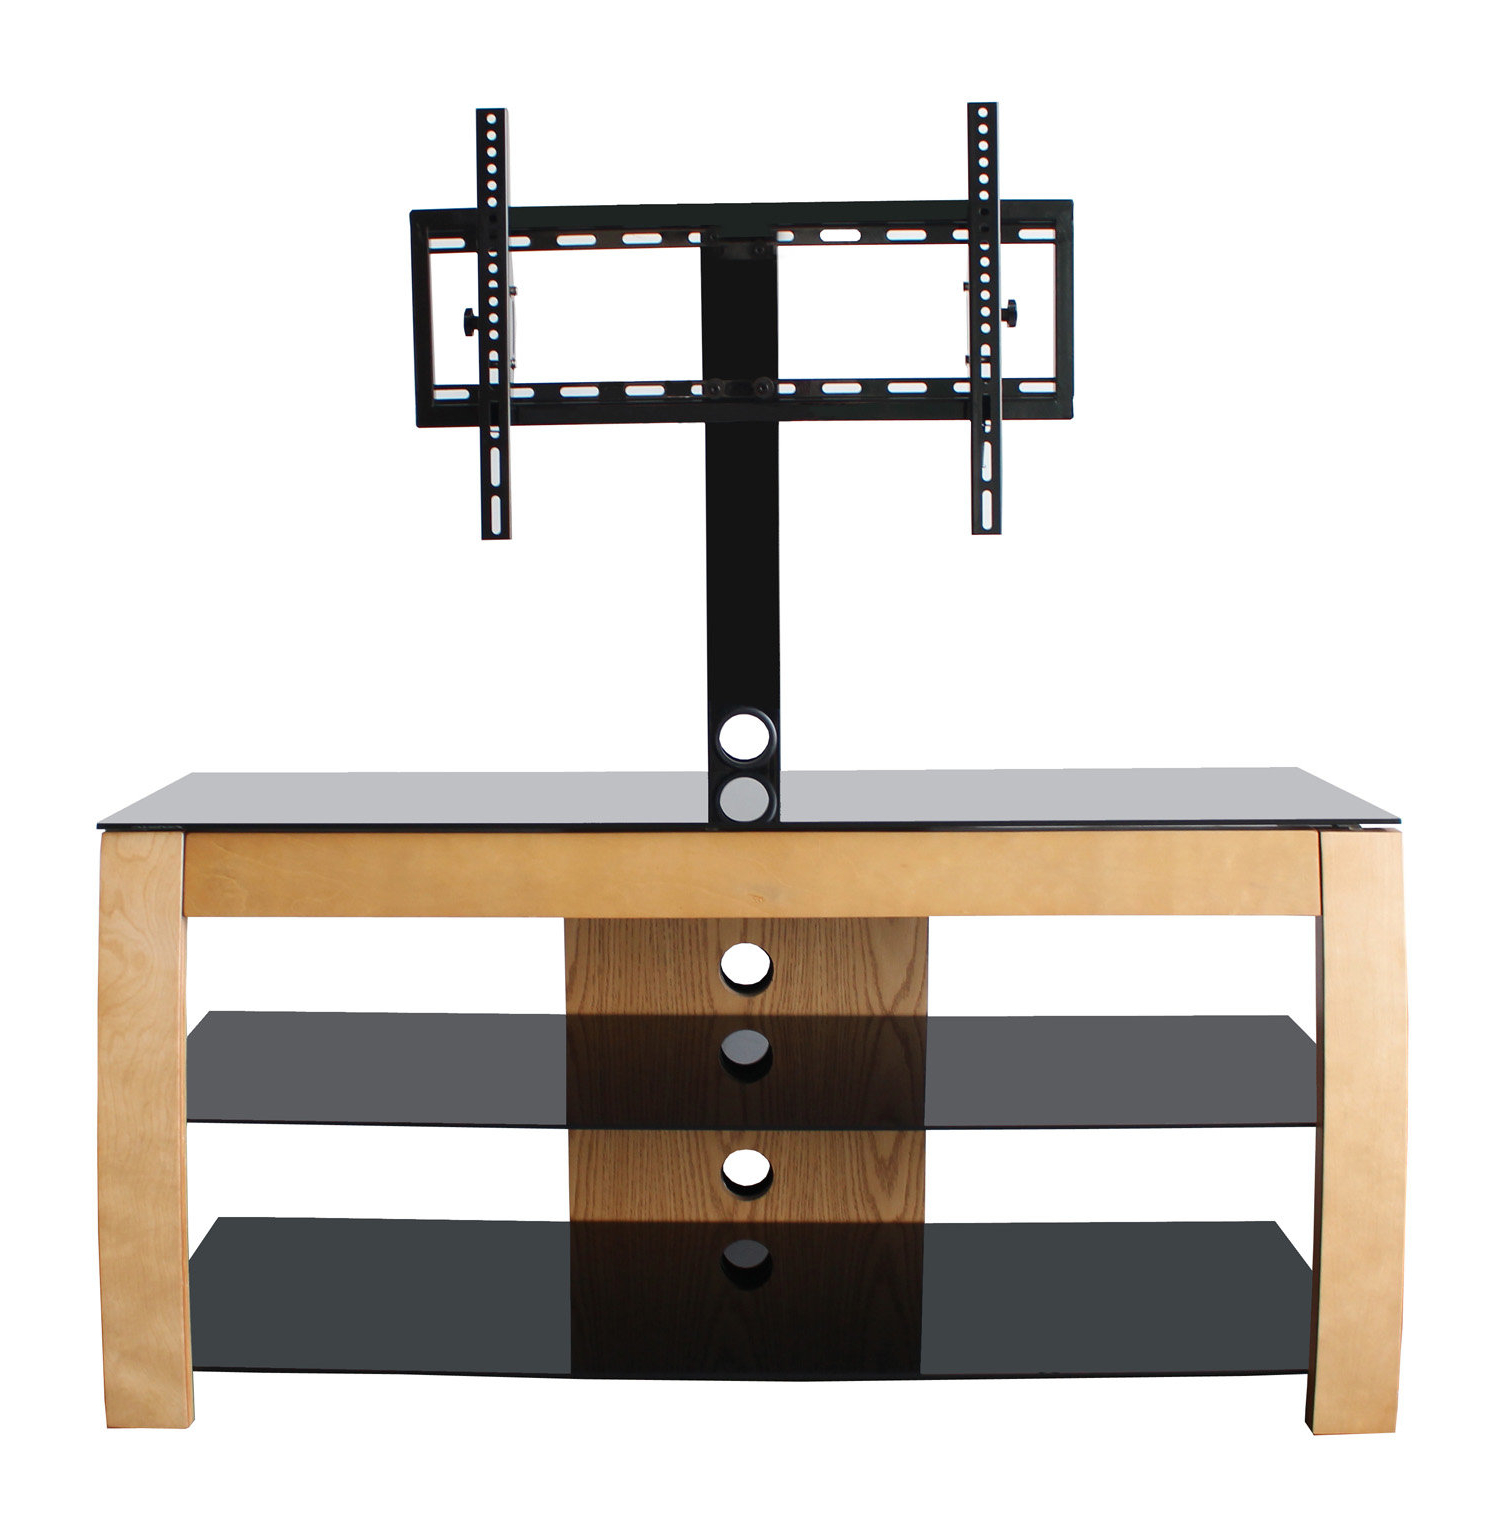 60 69 Inch Tv Stands You'll Love | Wayfair (View 1 of 20)